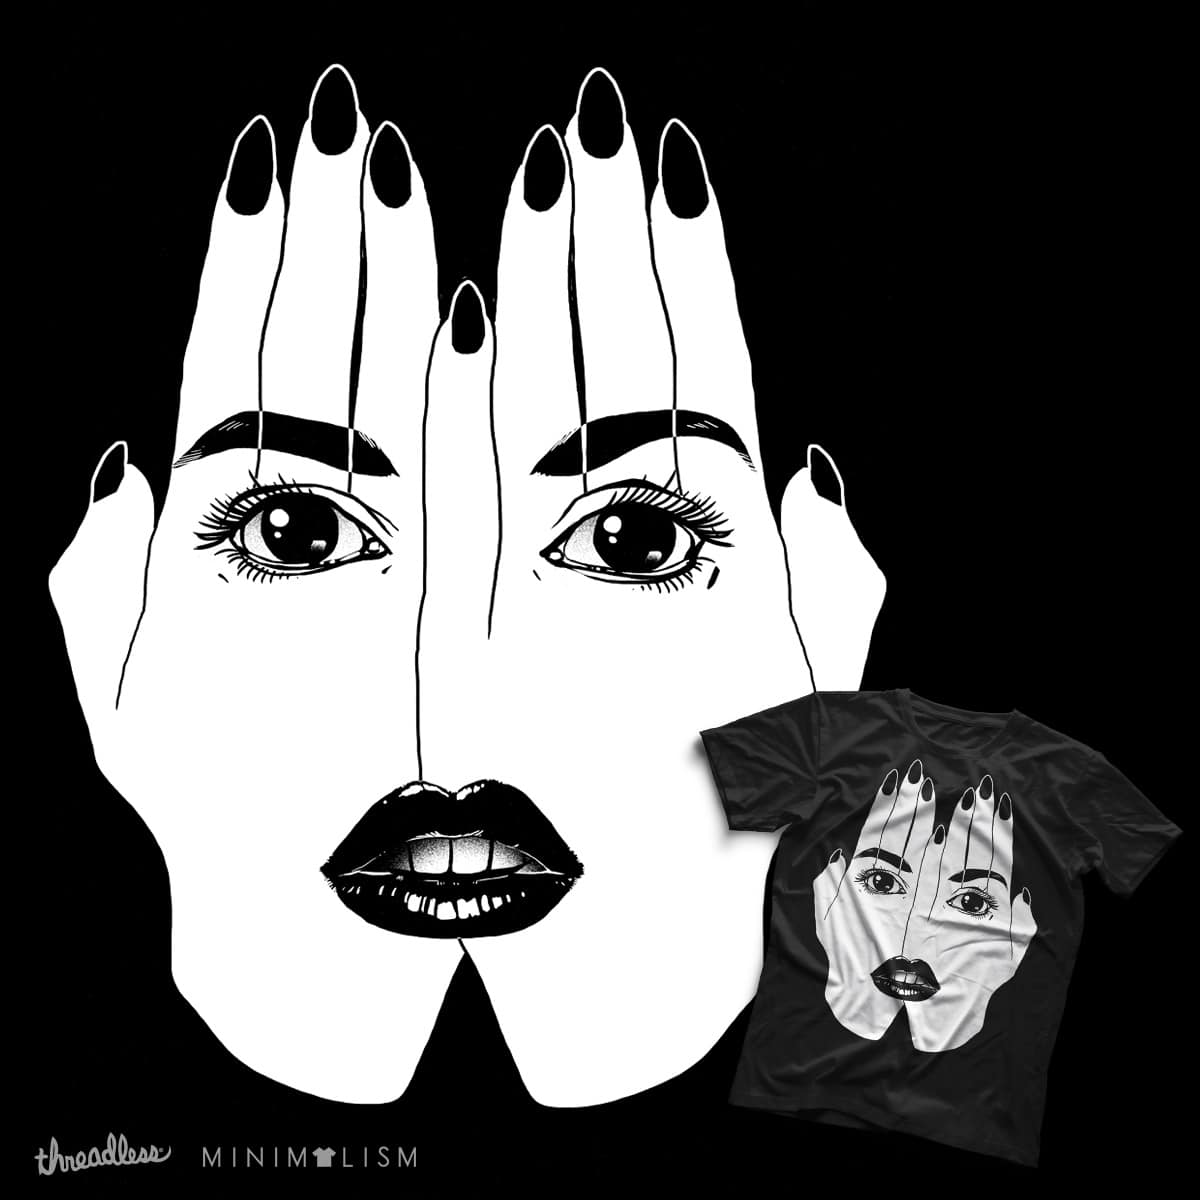 Seeing In The Dark by Bburkhart on Threadless